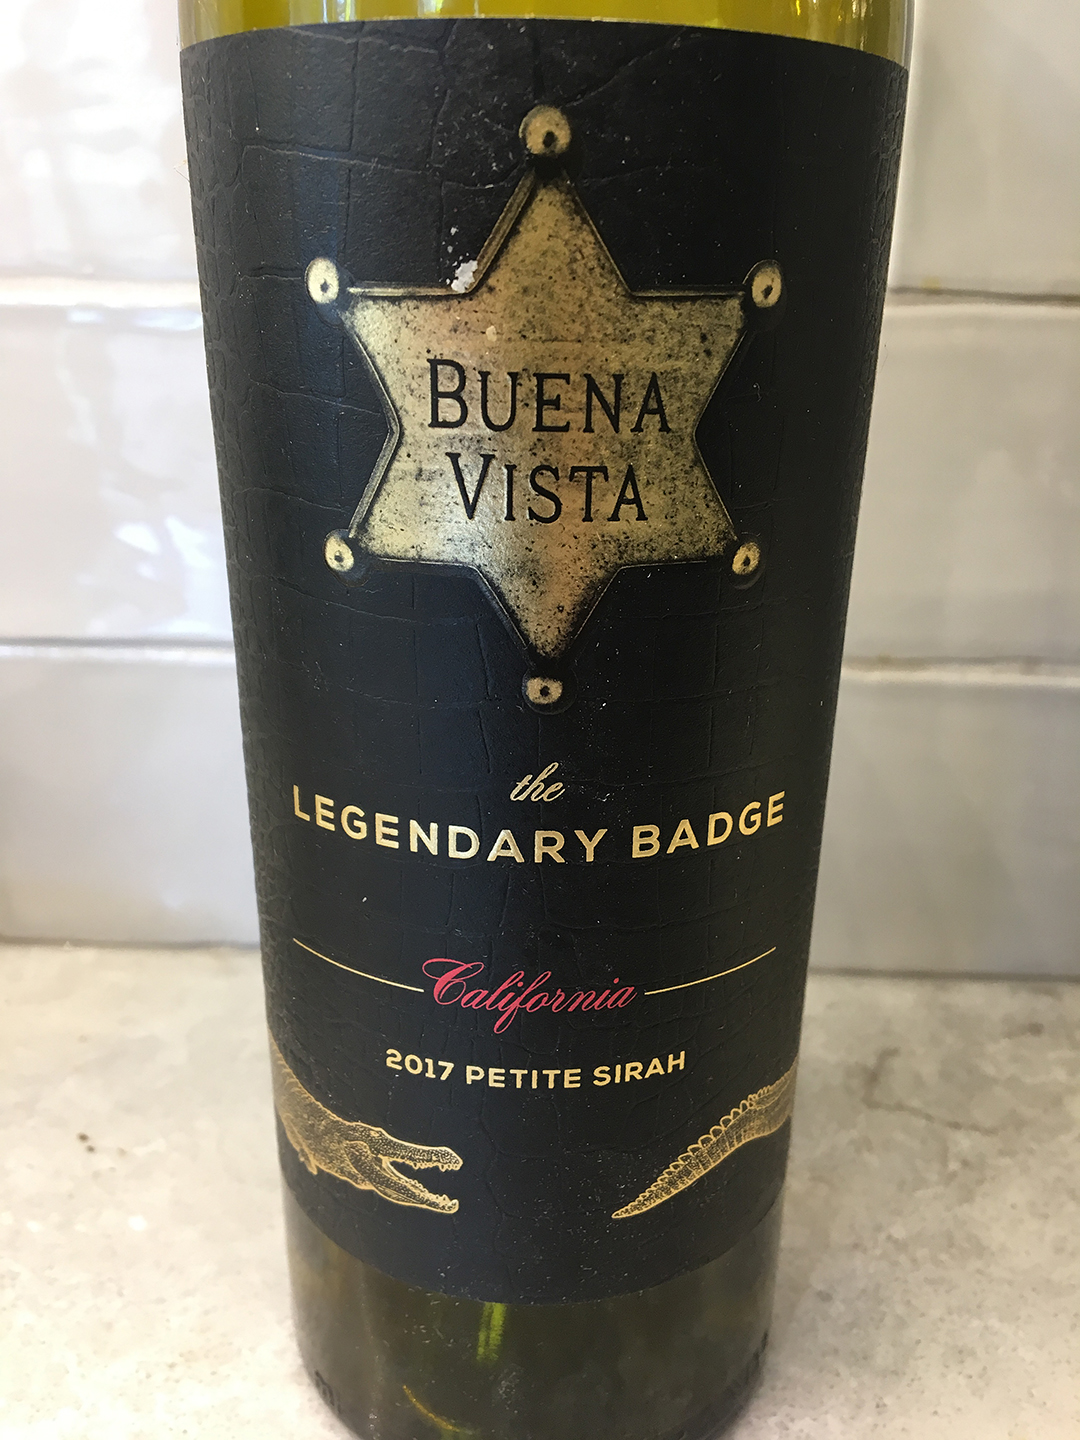 Buena Vista The Legendary Badge Petite Sirah 2017